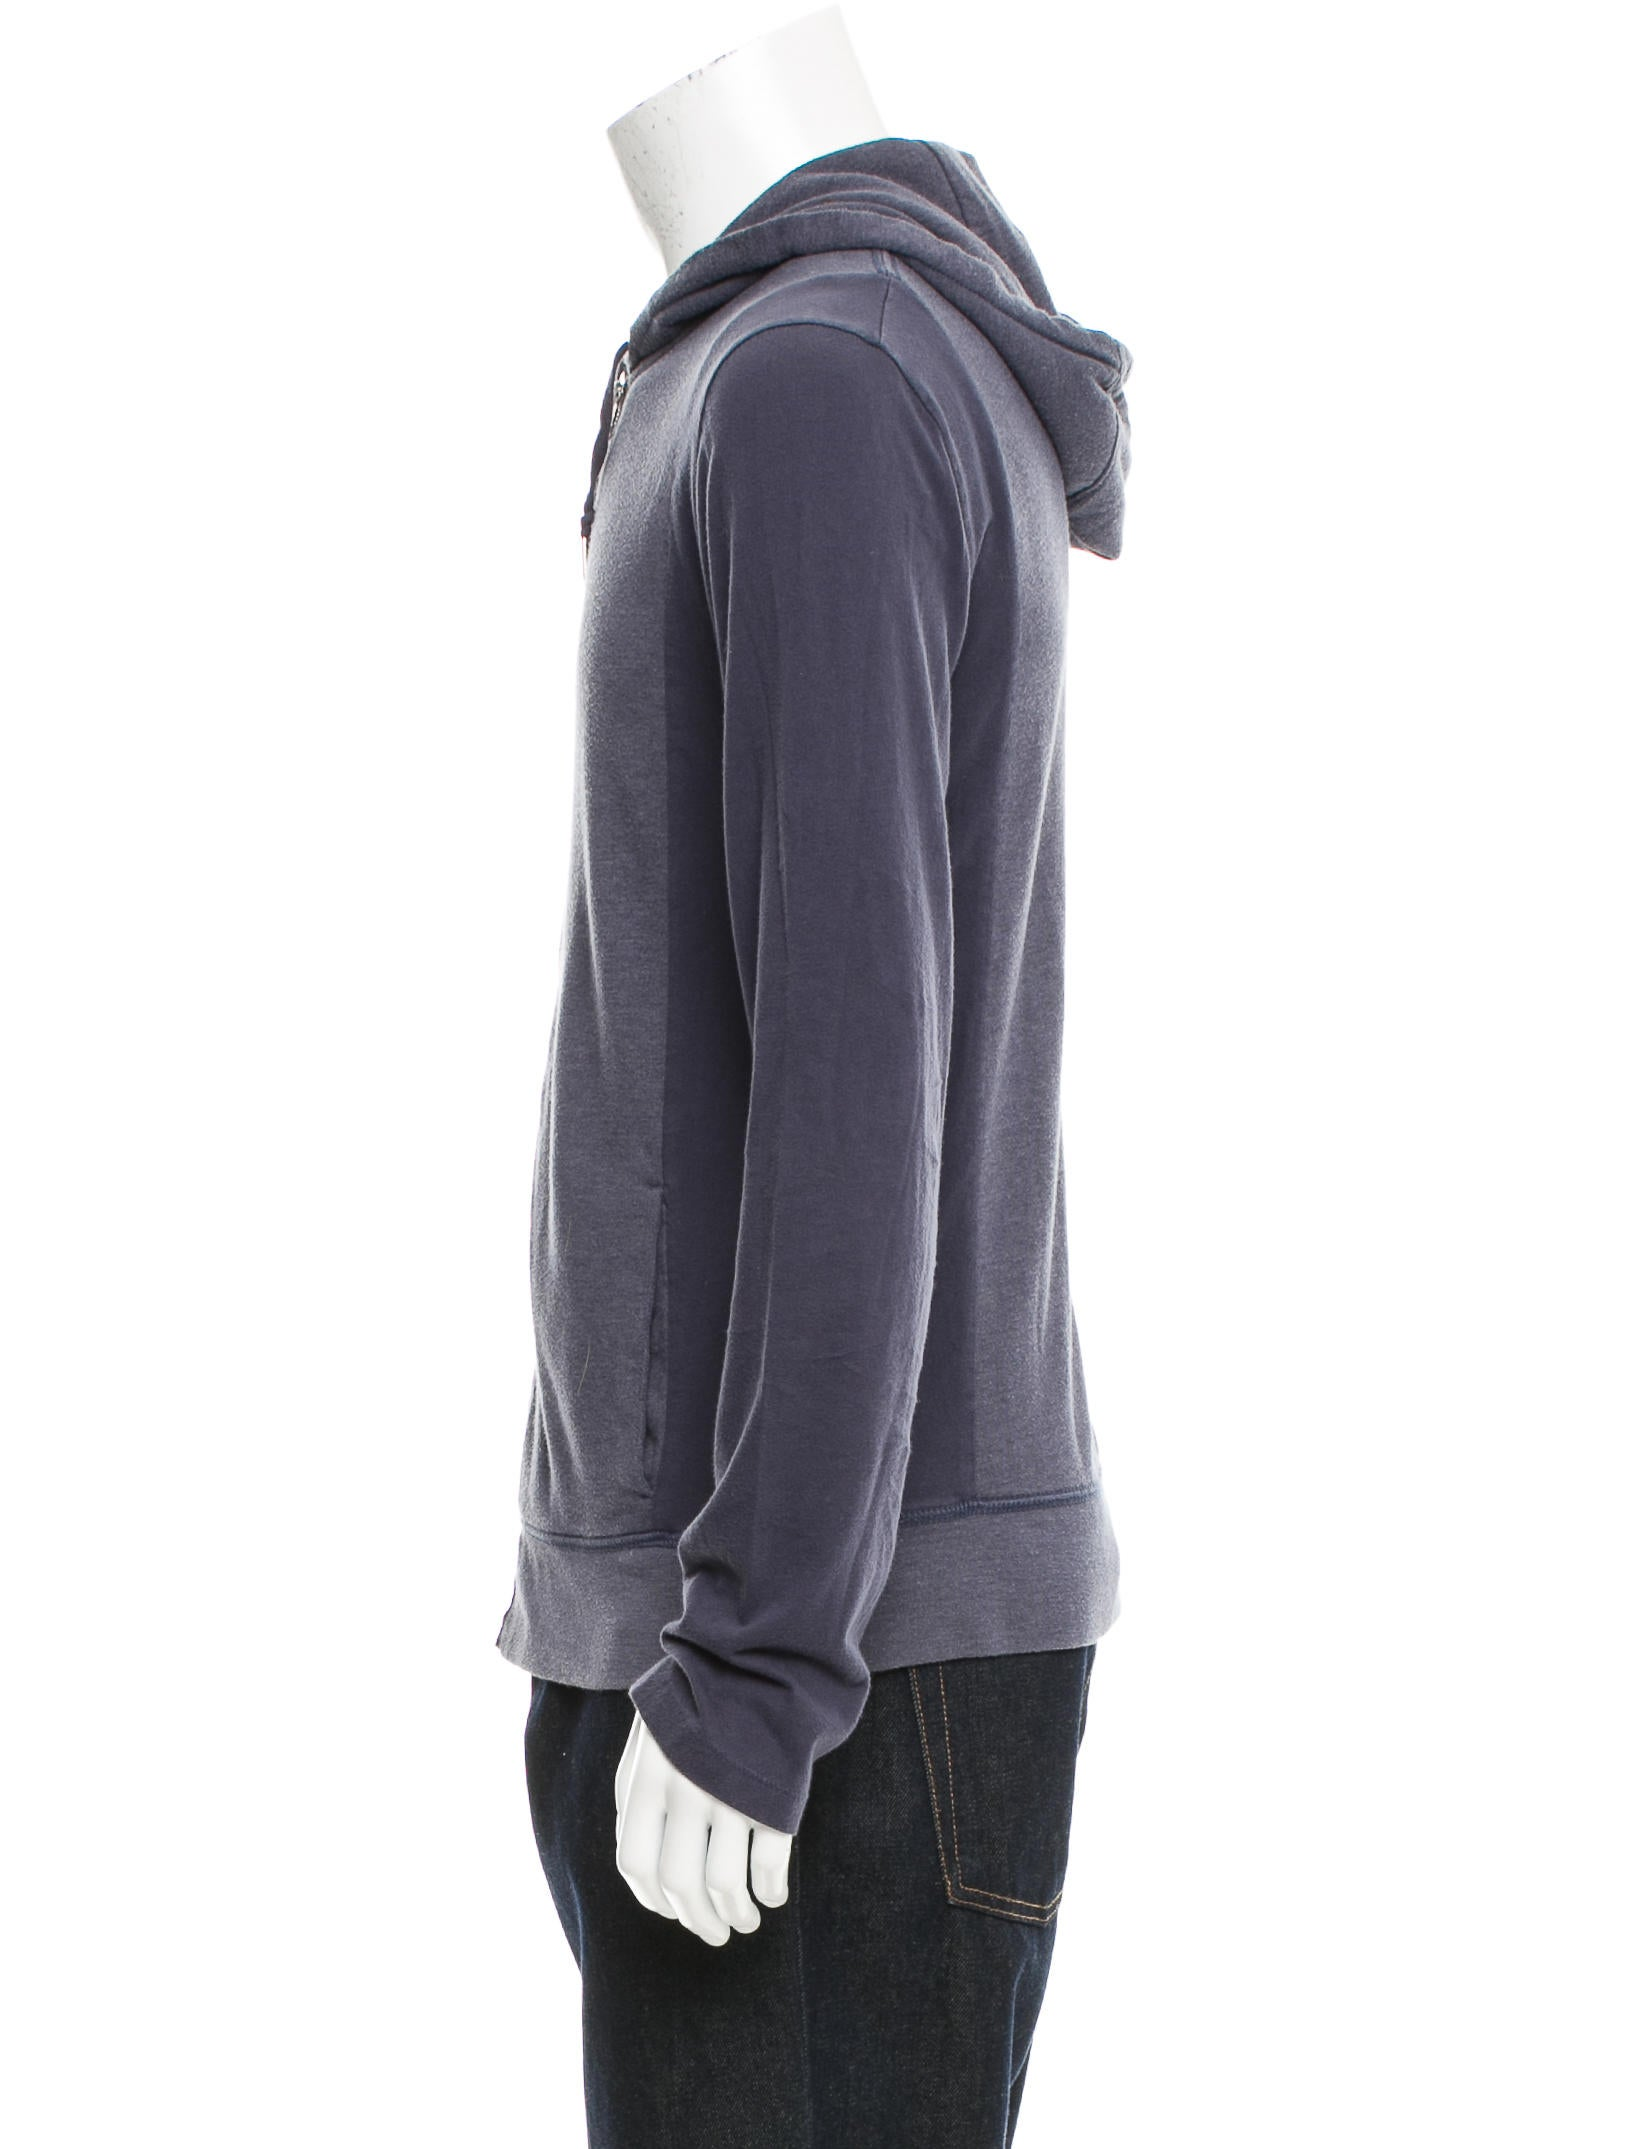 T by Alexander Wang Drawstring Zip-Up Hoodie - Clothing - WTB31163 | The RealReal